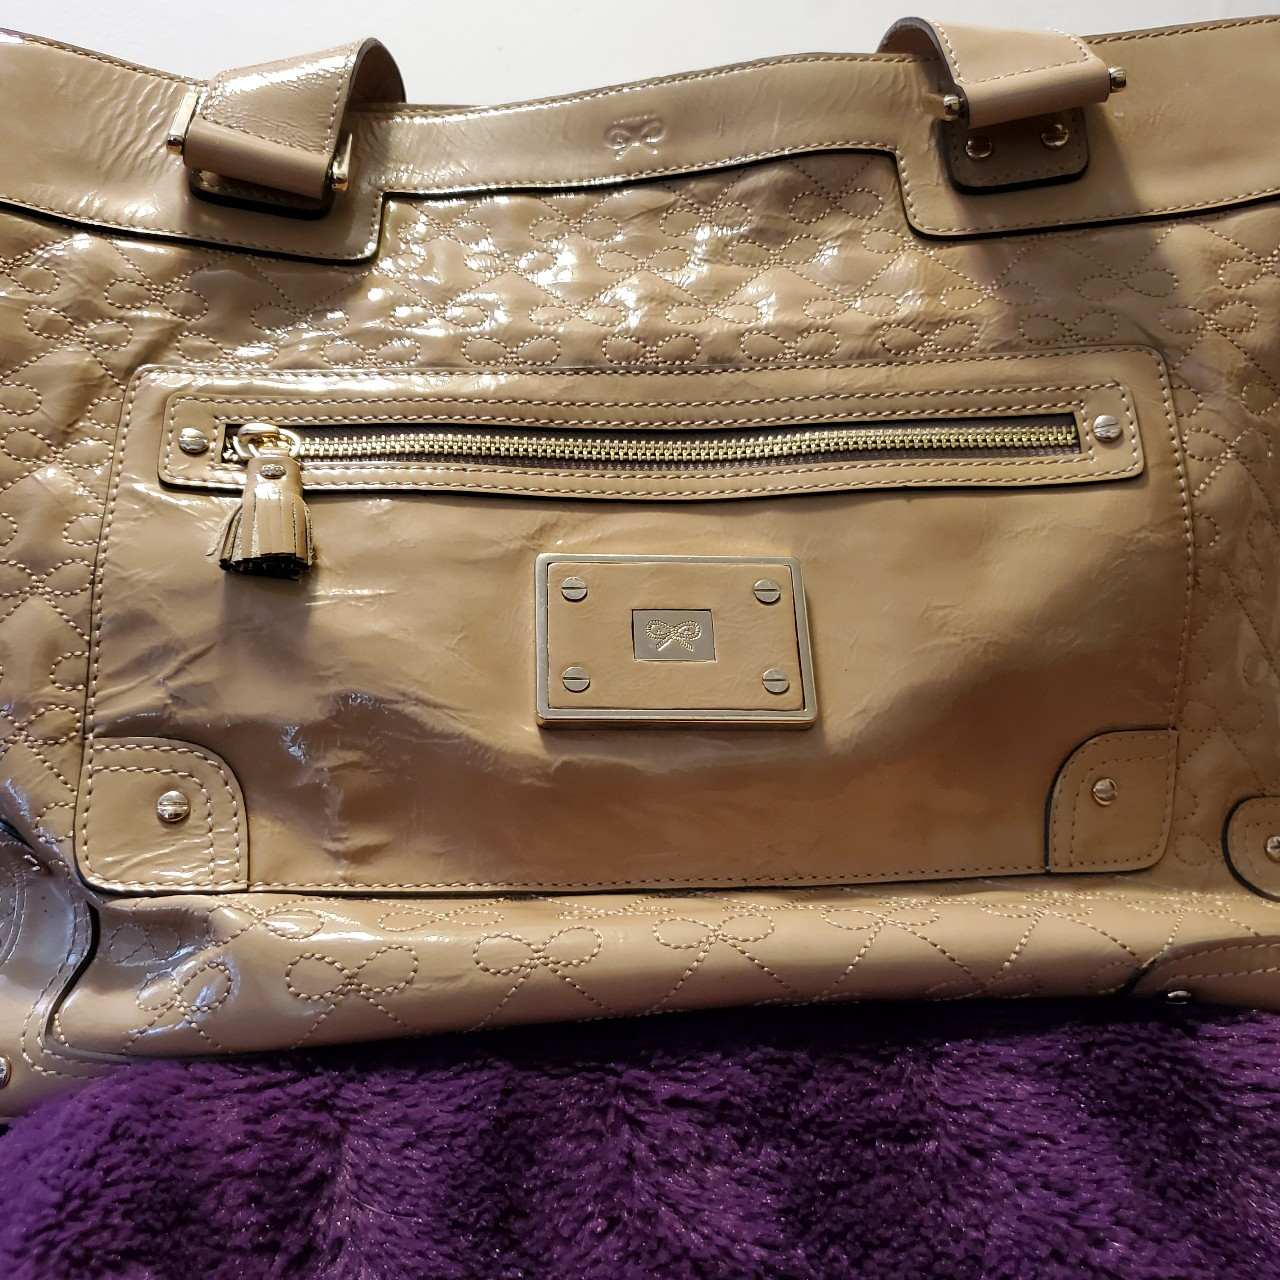 Product Image 1 - Large Anya Hindmarch cream colored